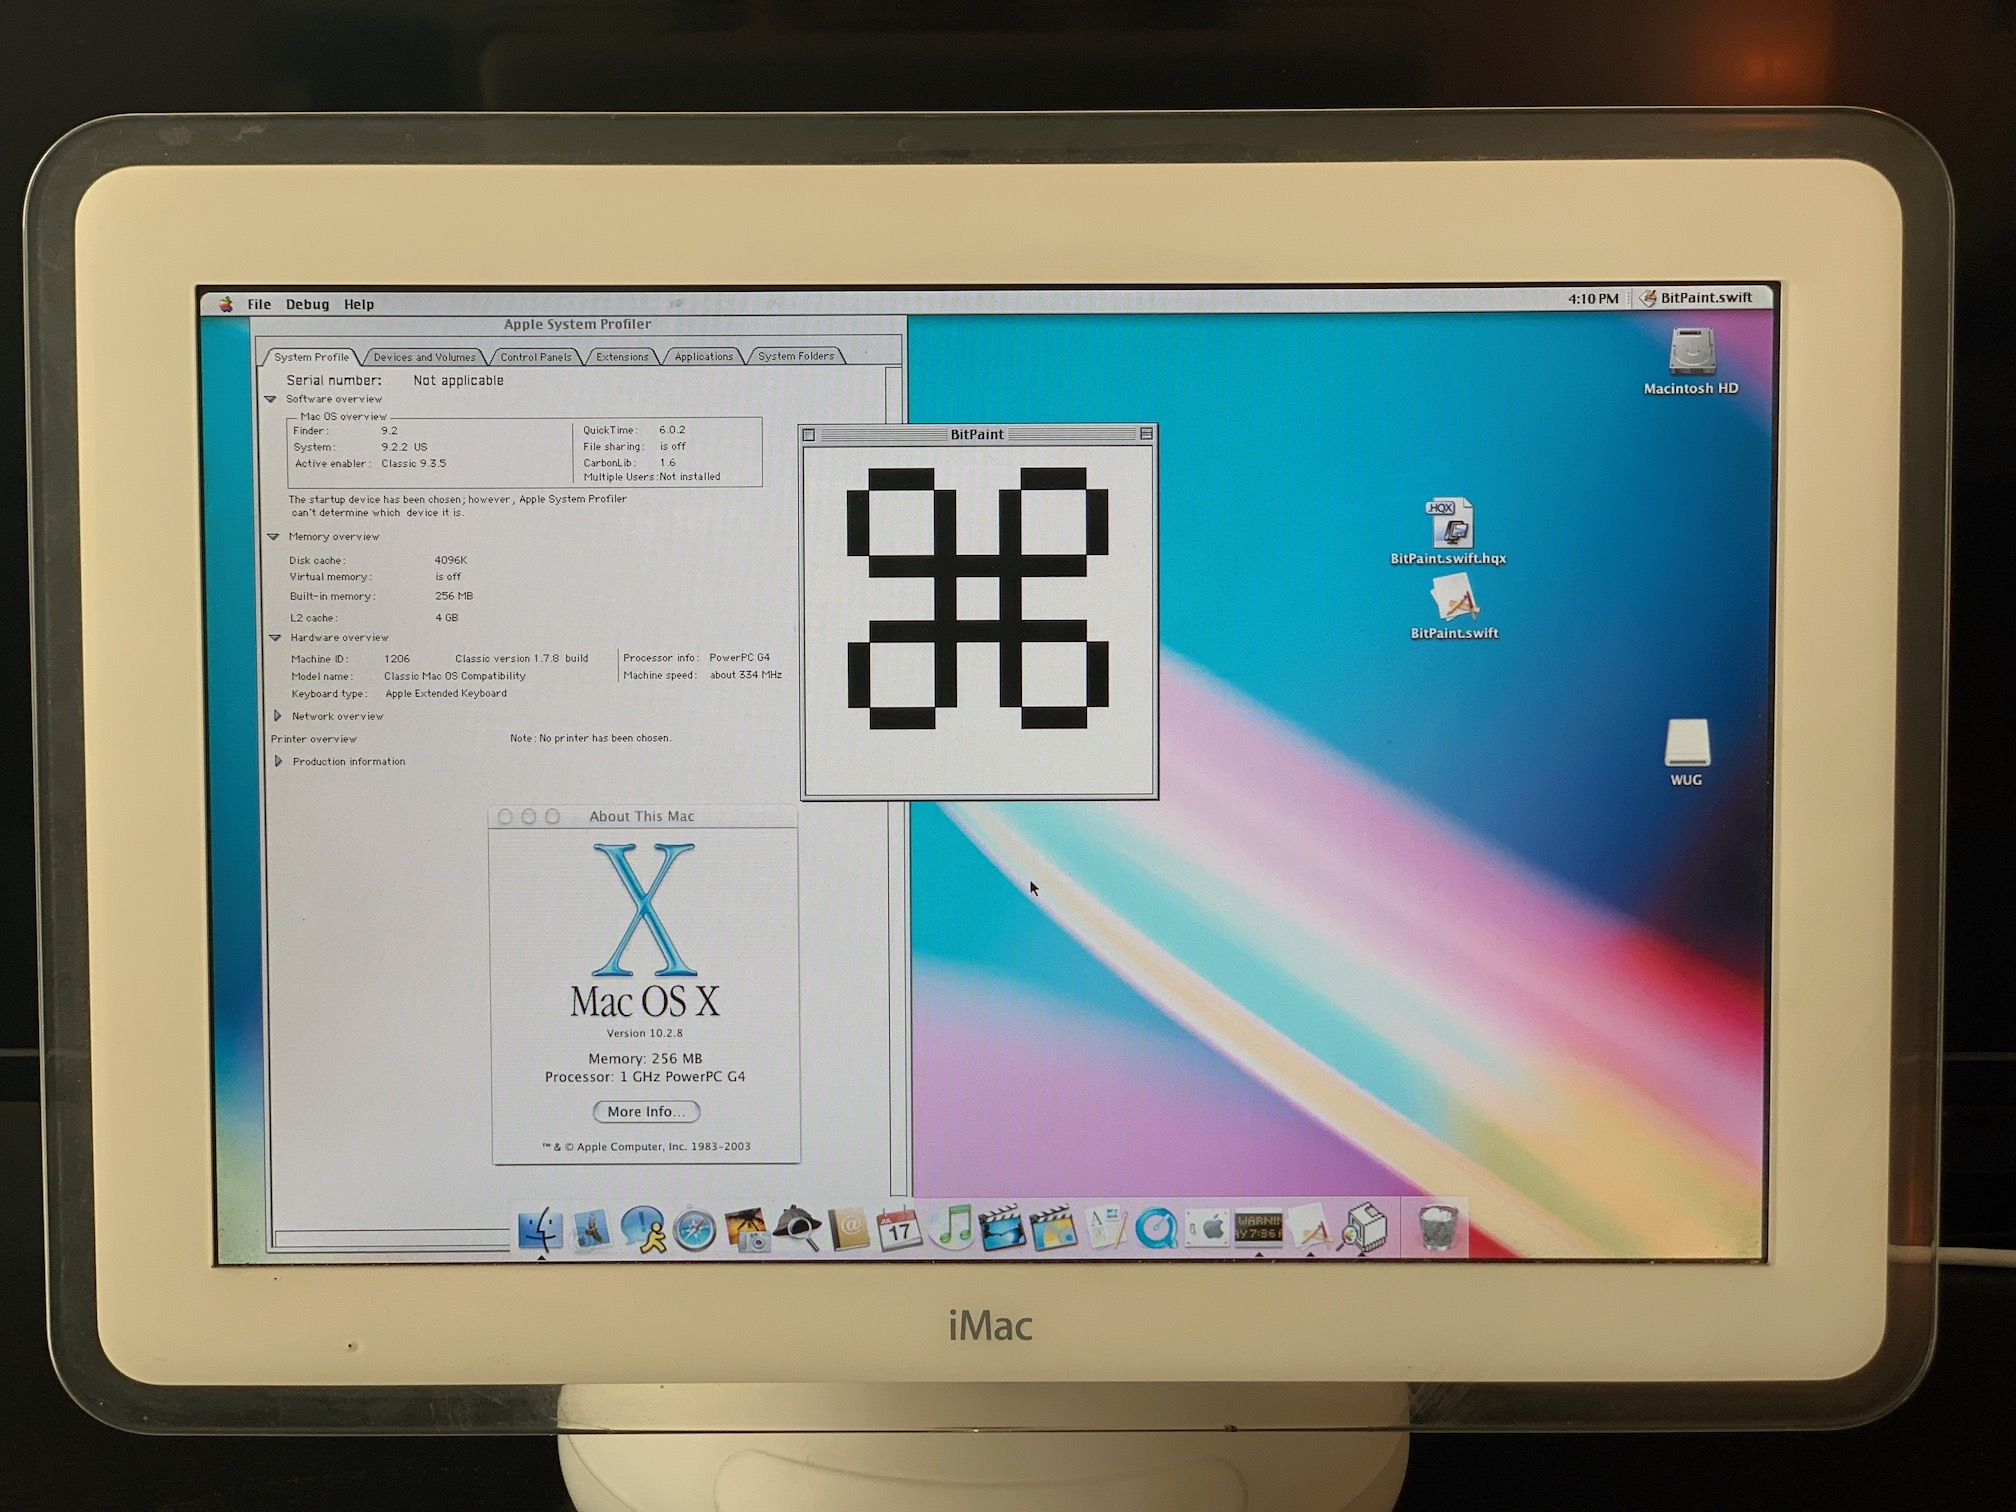 "You can see BitPaint running in the middle, and the Classic version of Apple System Profiler...but also the Mac OS X ""About This Computer"" box showing 10.2.8."